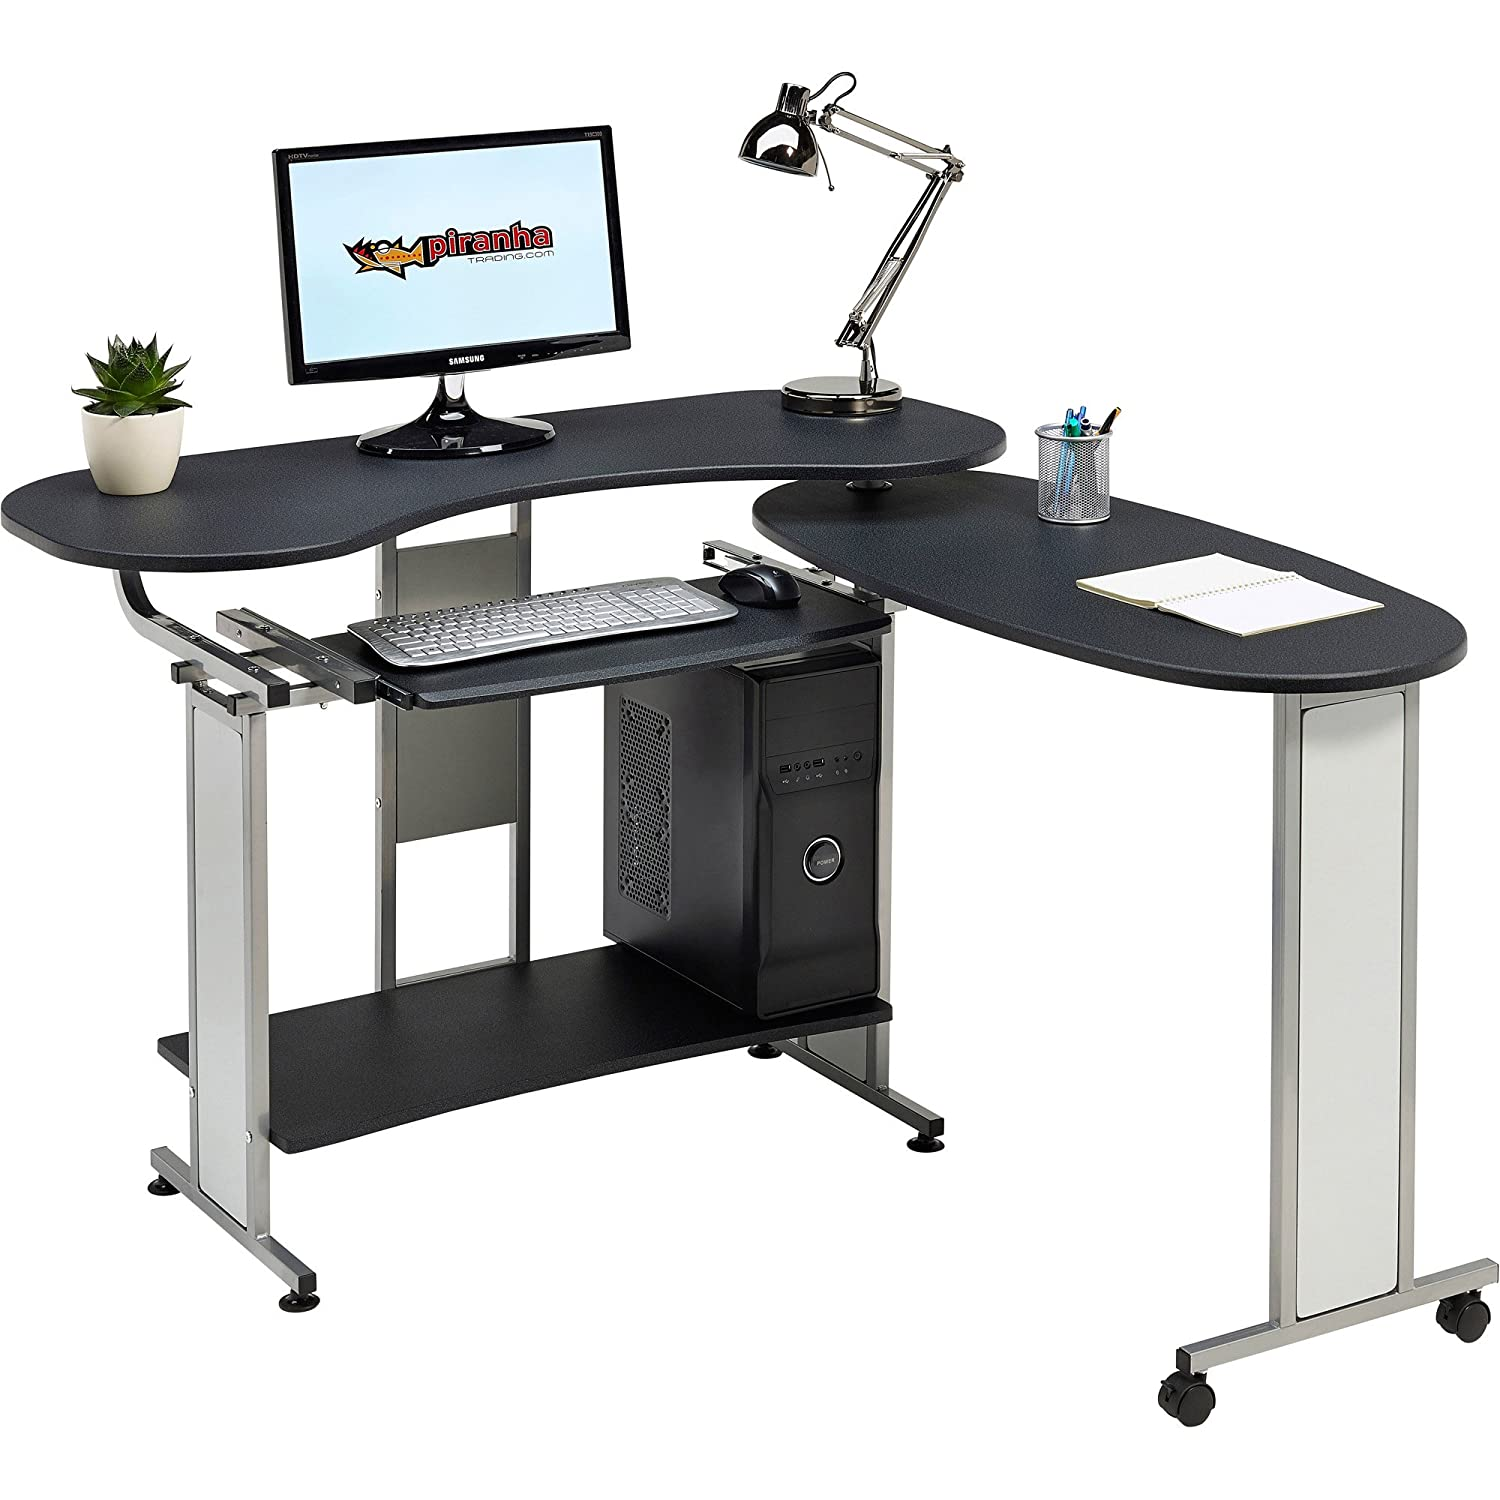 Compact Folding Computer And Writing Desk With Sliding Keyboard Shelf In  Graphite Black Effect For Home Office   Piranha Mako PC 3g: Amazon.co.uk:  Kitchen U0026 ...